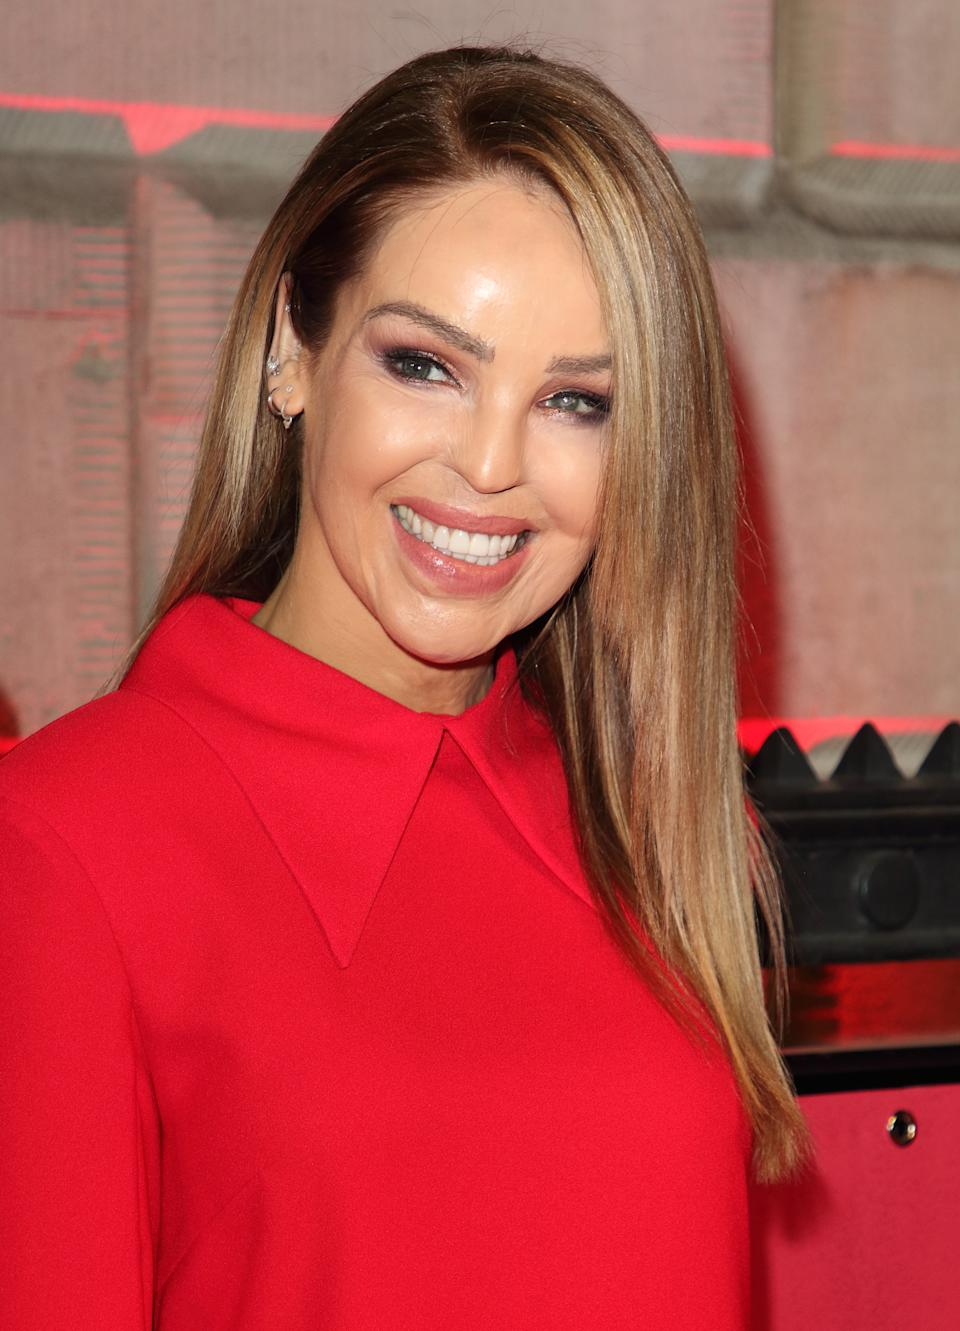 Katie Piper attends The Sun Military Awards 2020 at the Banqueting House in London. (Photo by Keith Mayhew / SOPA Images/Sipa USA)